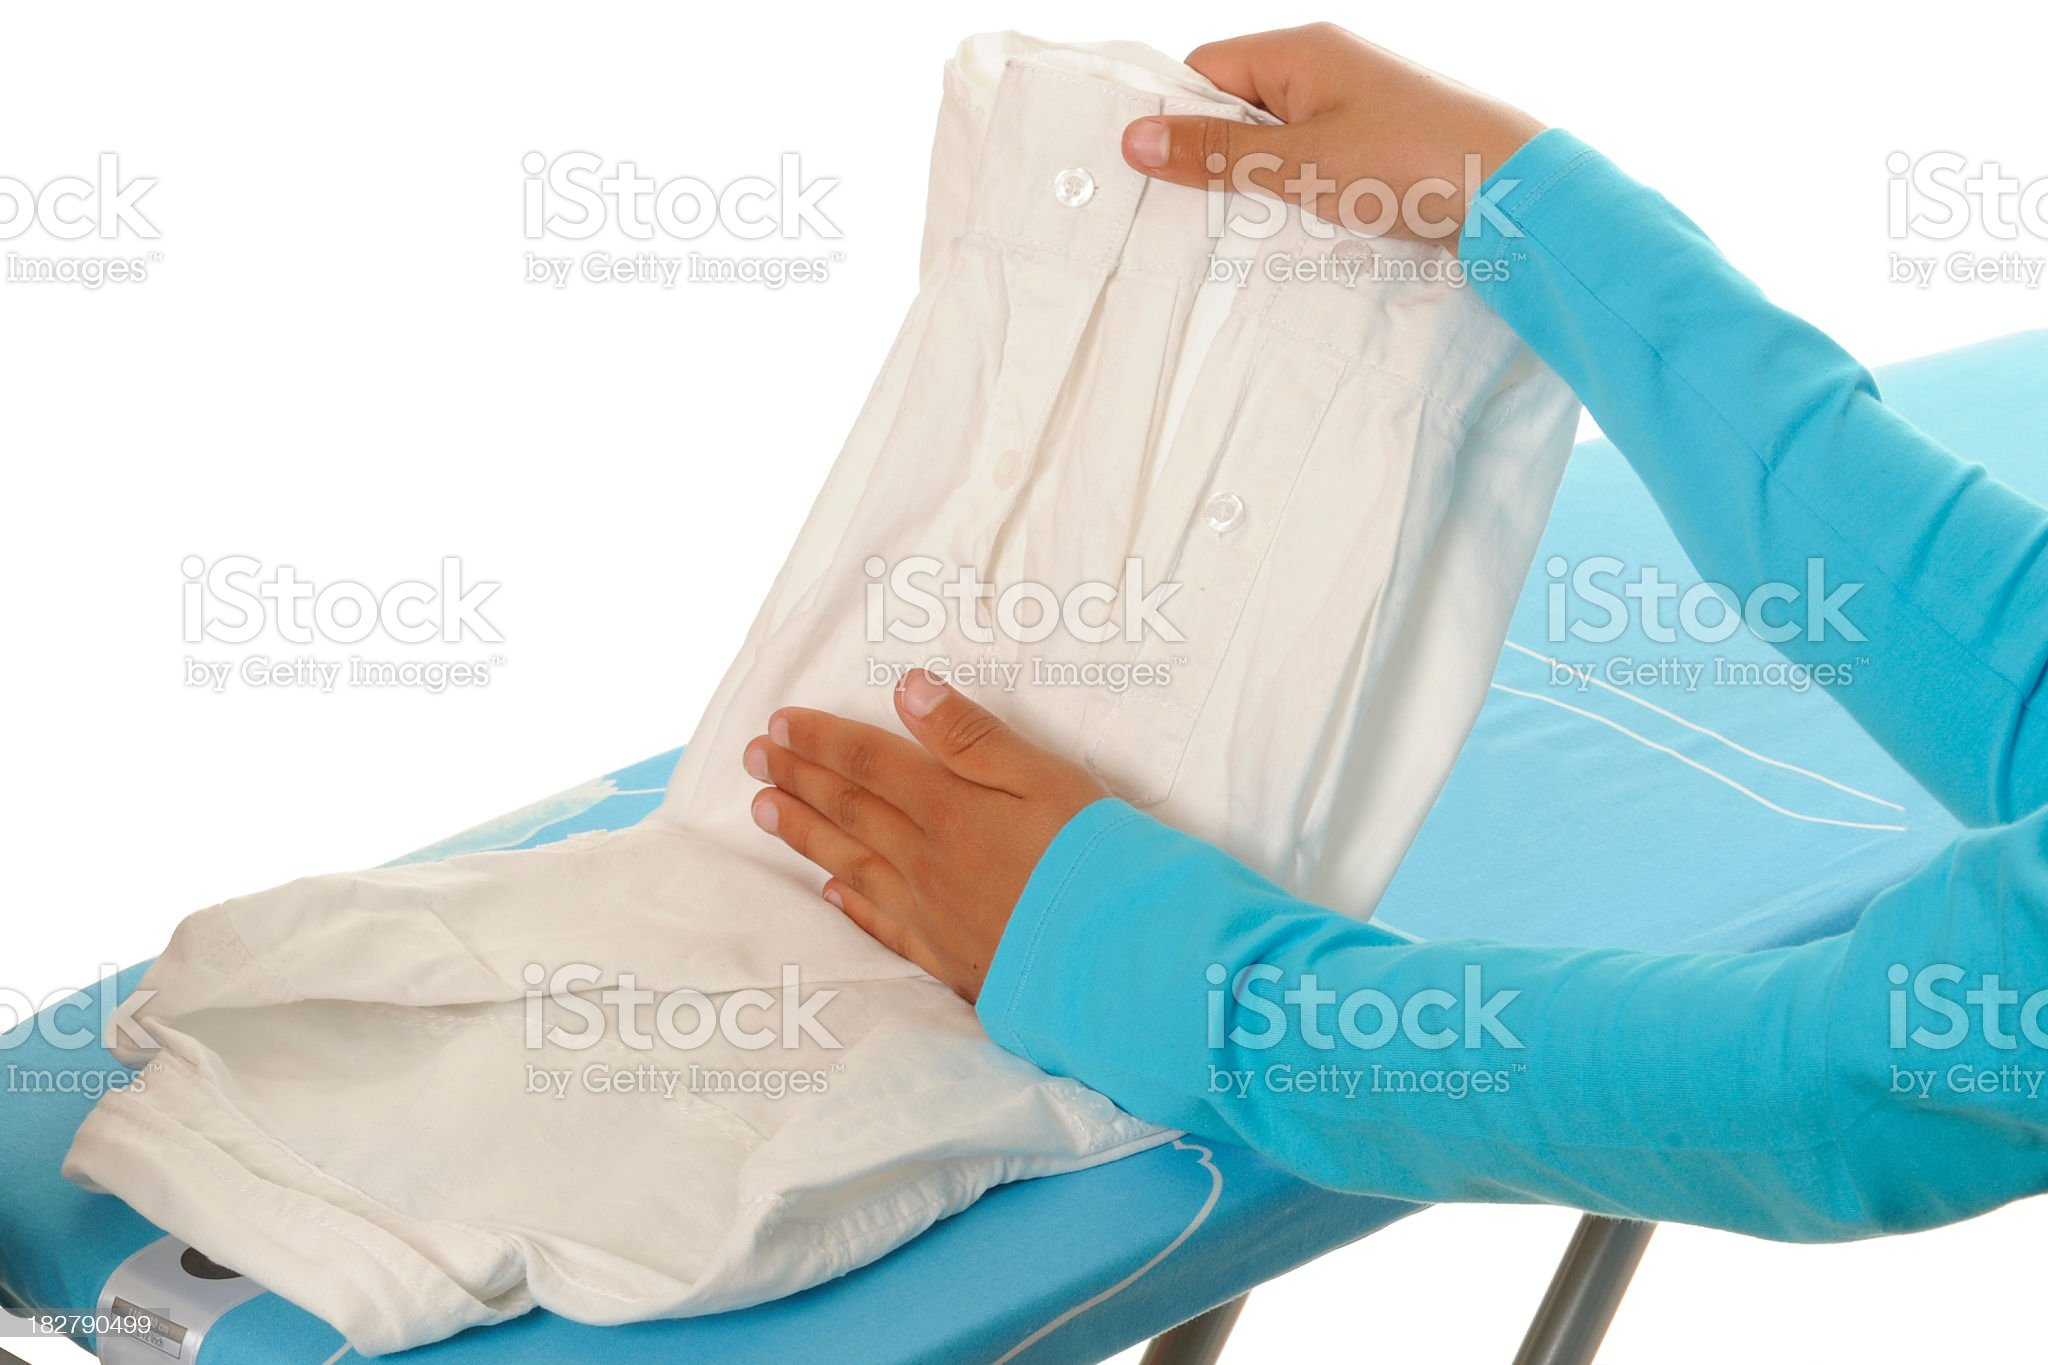 Folding a blouse on an ironing board royalty-free stock photo